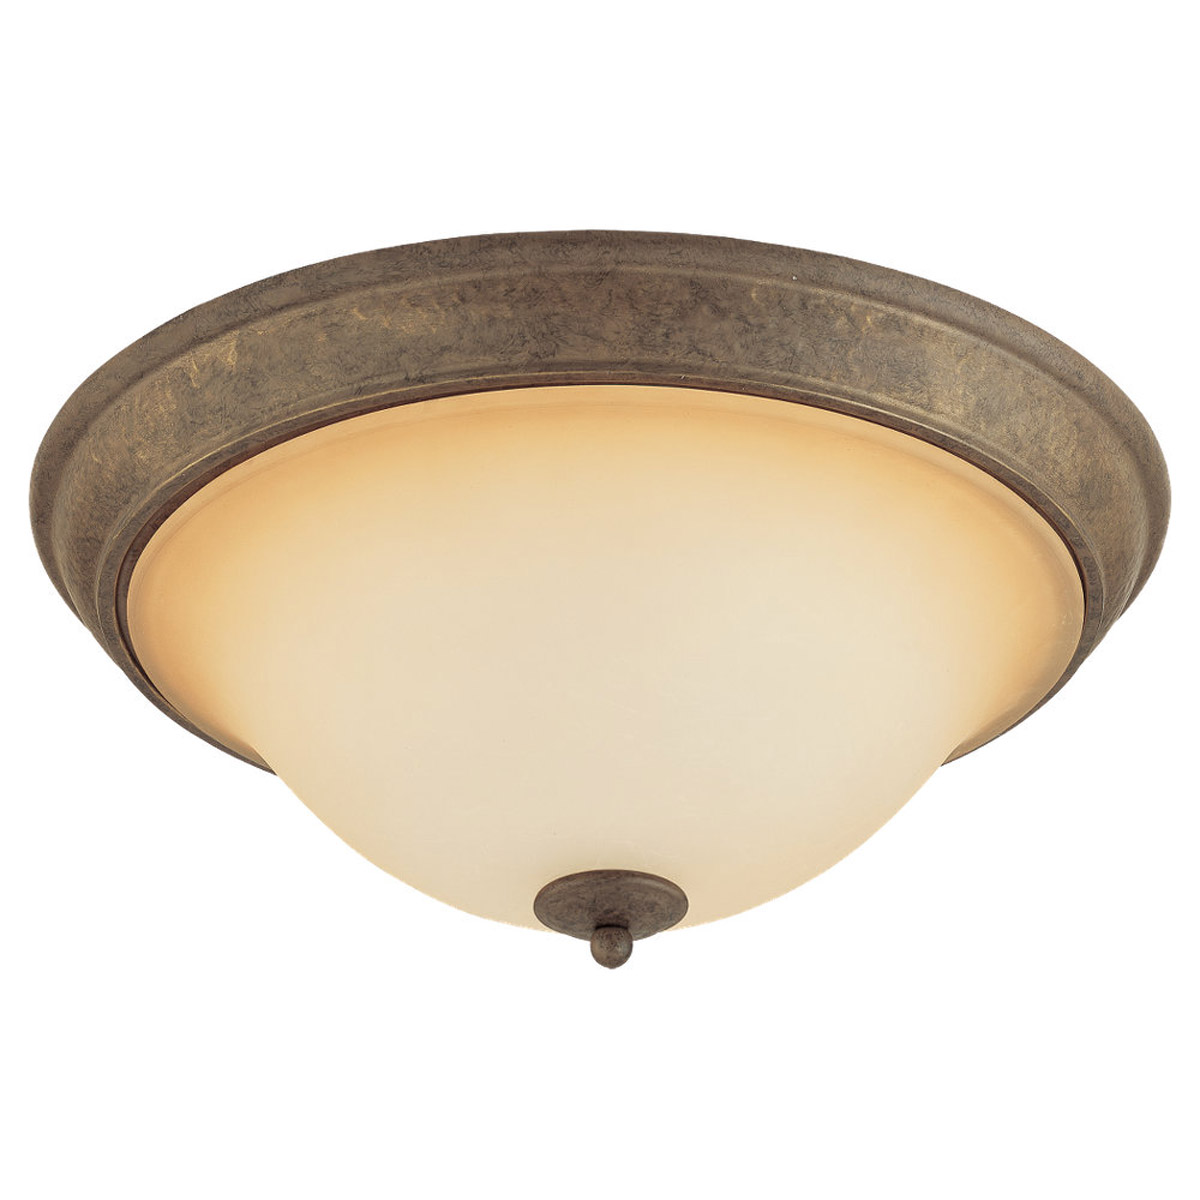 Sea Gull Lighting Brandywine 3 Light Flush Mount in Antique Bronze 75430-71 photo